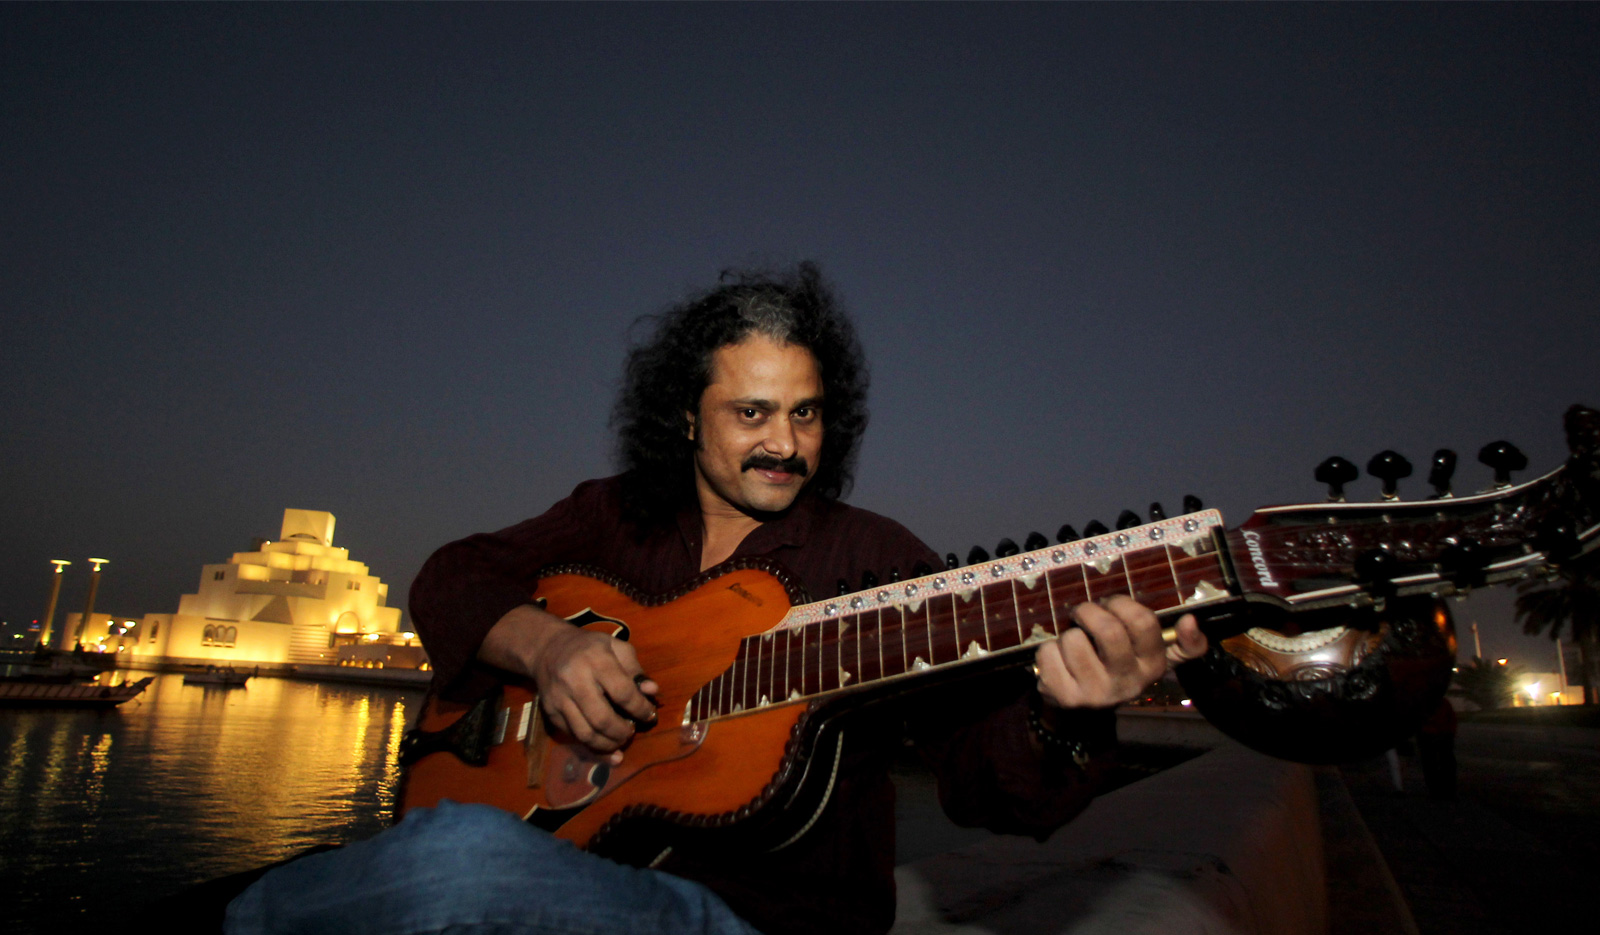 Poly Varghese - Poly Varghese